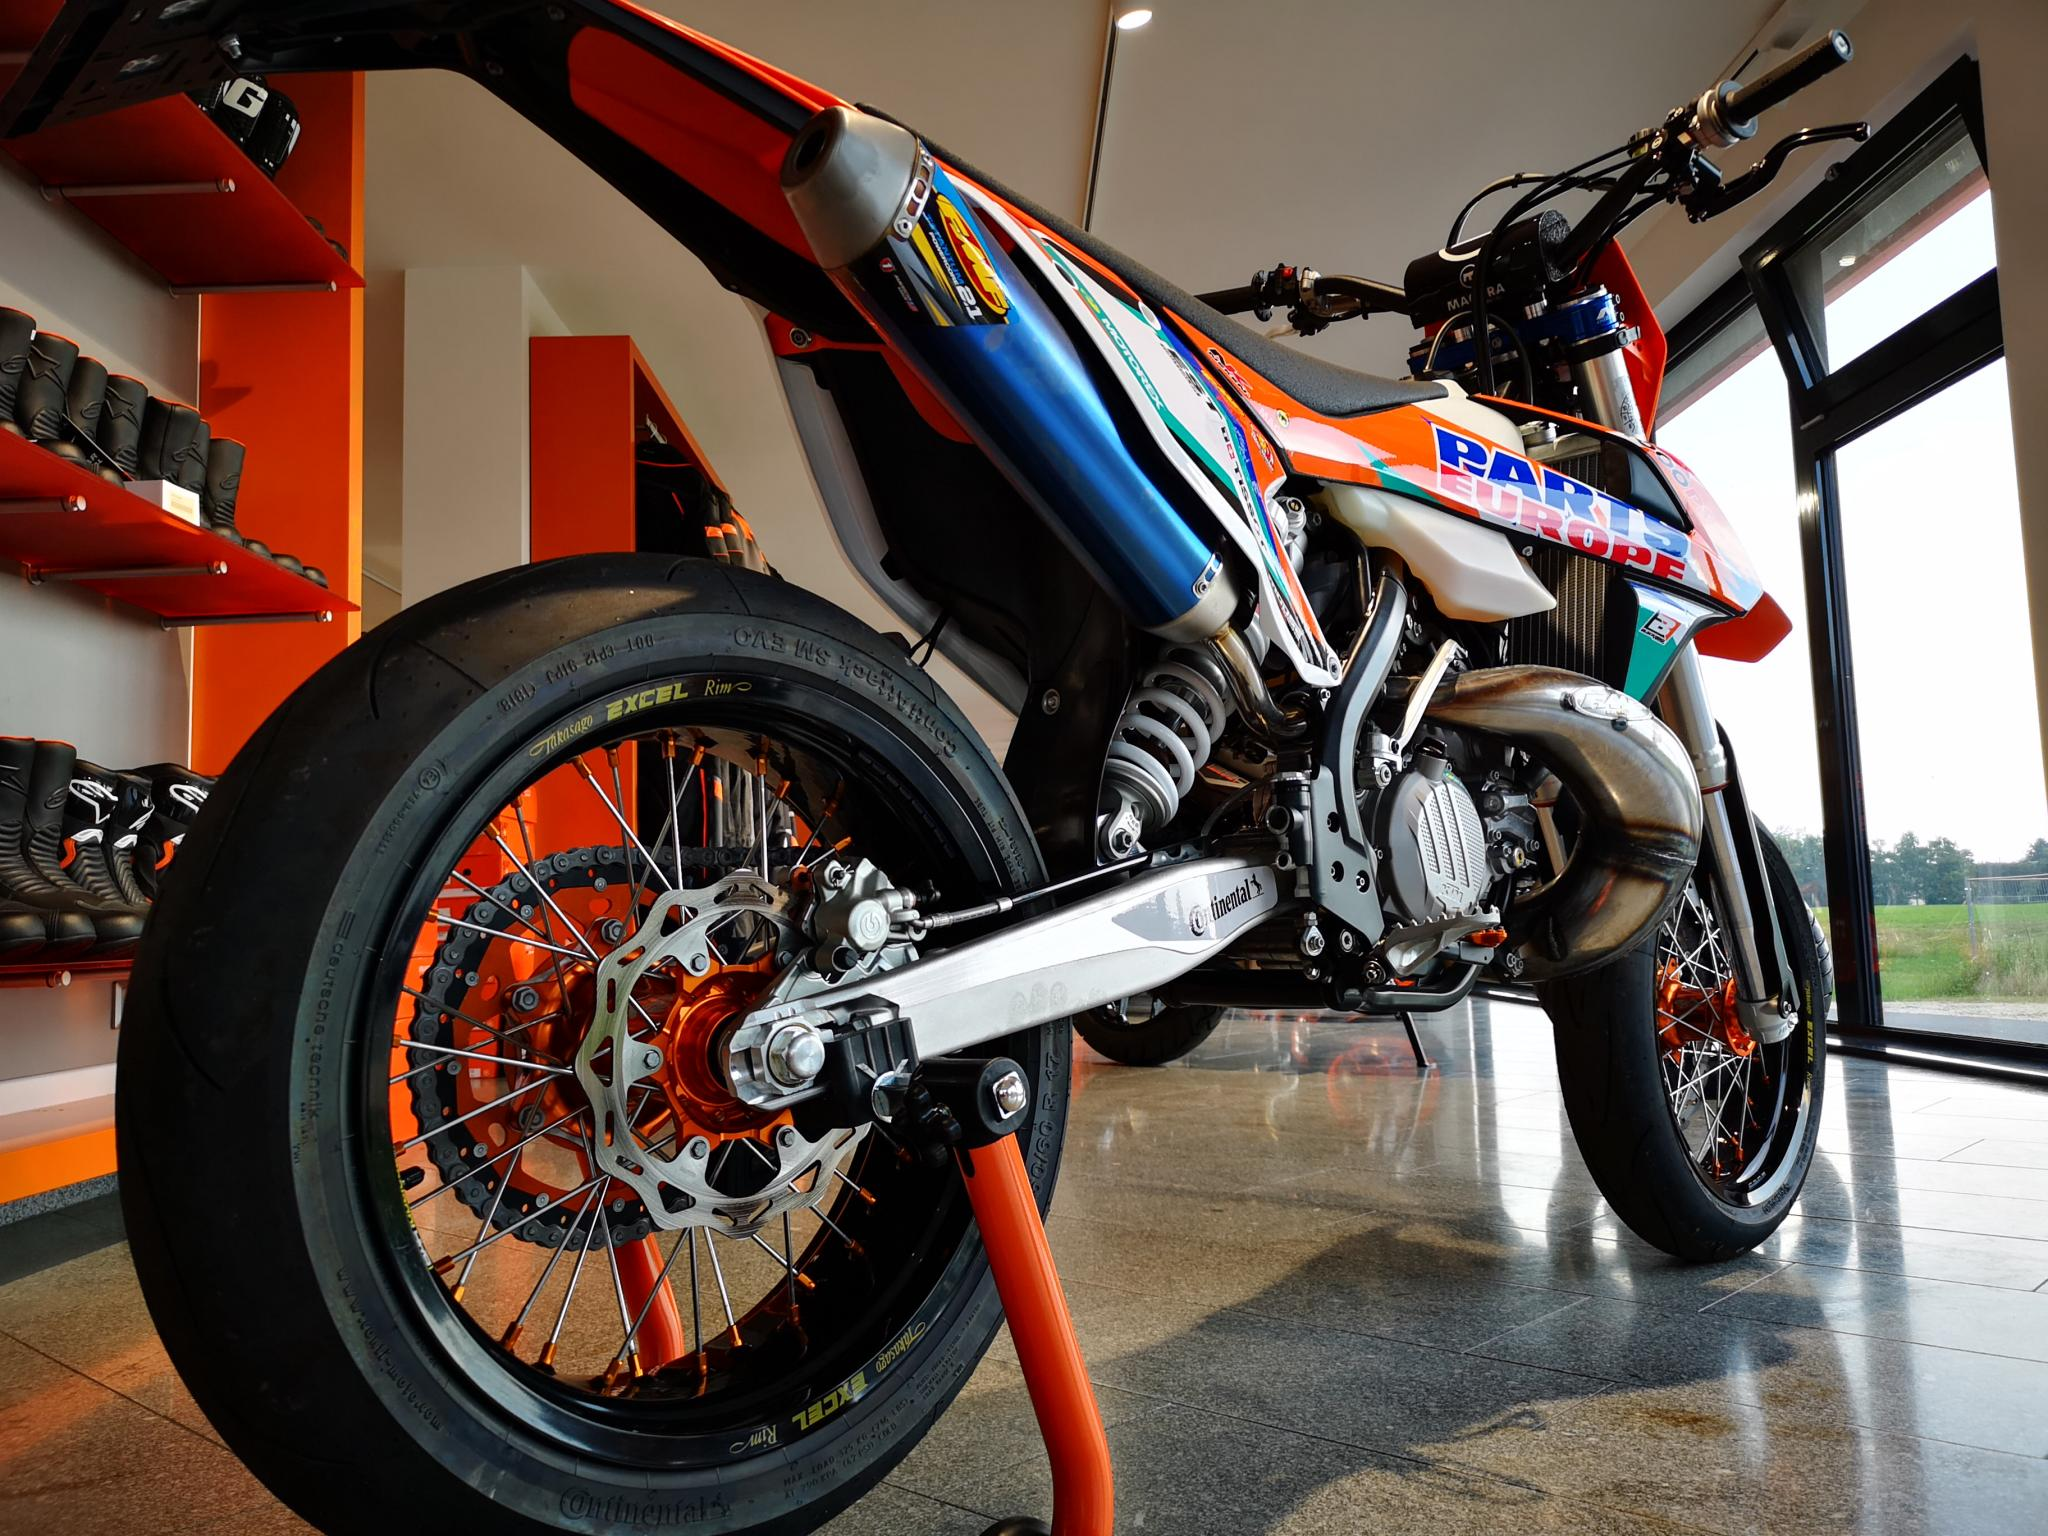 ktm 300 exc 2 takt supermoto umbau 1000ps edition. Black Bedroom Furniture Sets. Home Design Ideas